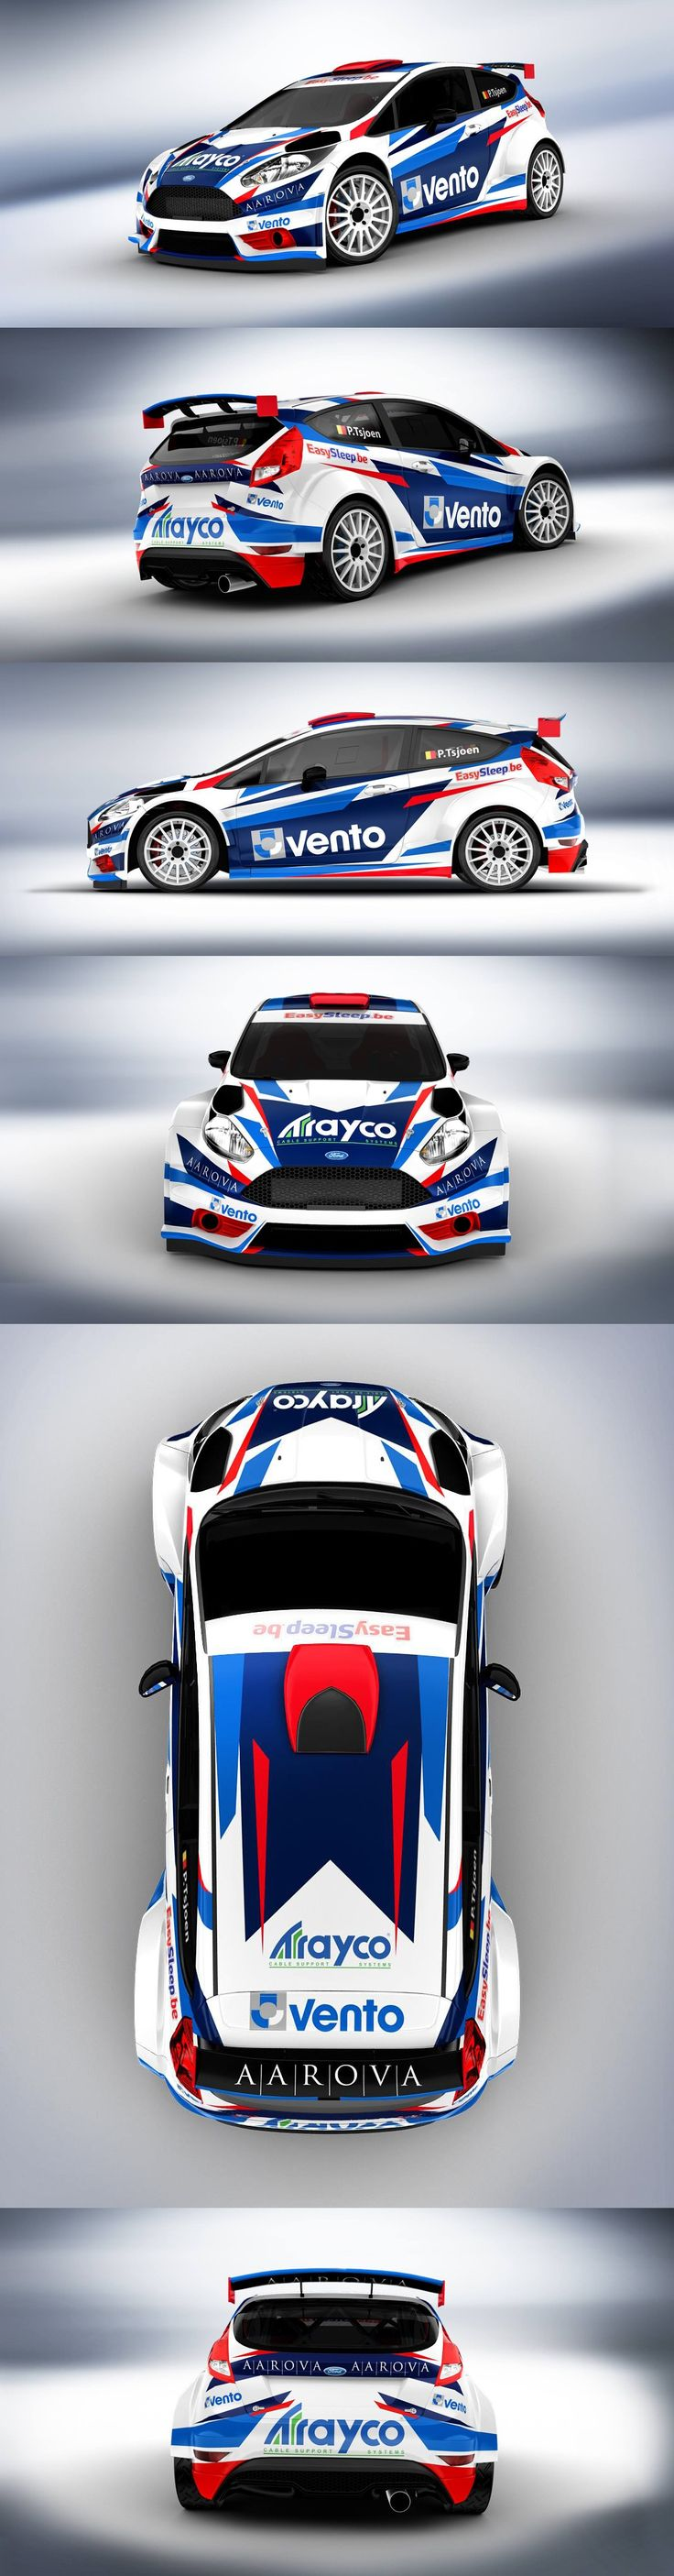 Car sticker design pinterest - Ford Fiesta Racing Livery We Collect And Generate Ideas Ufx Dk